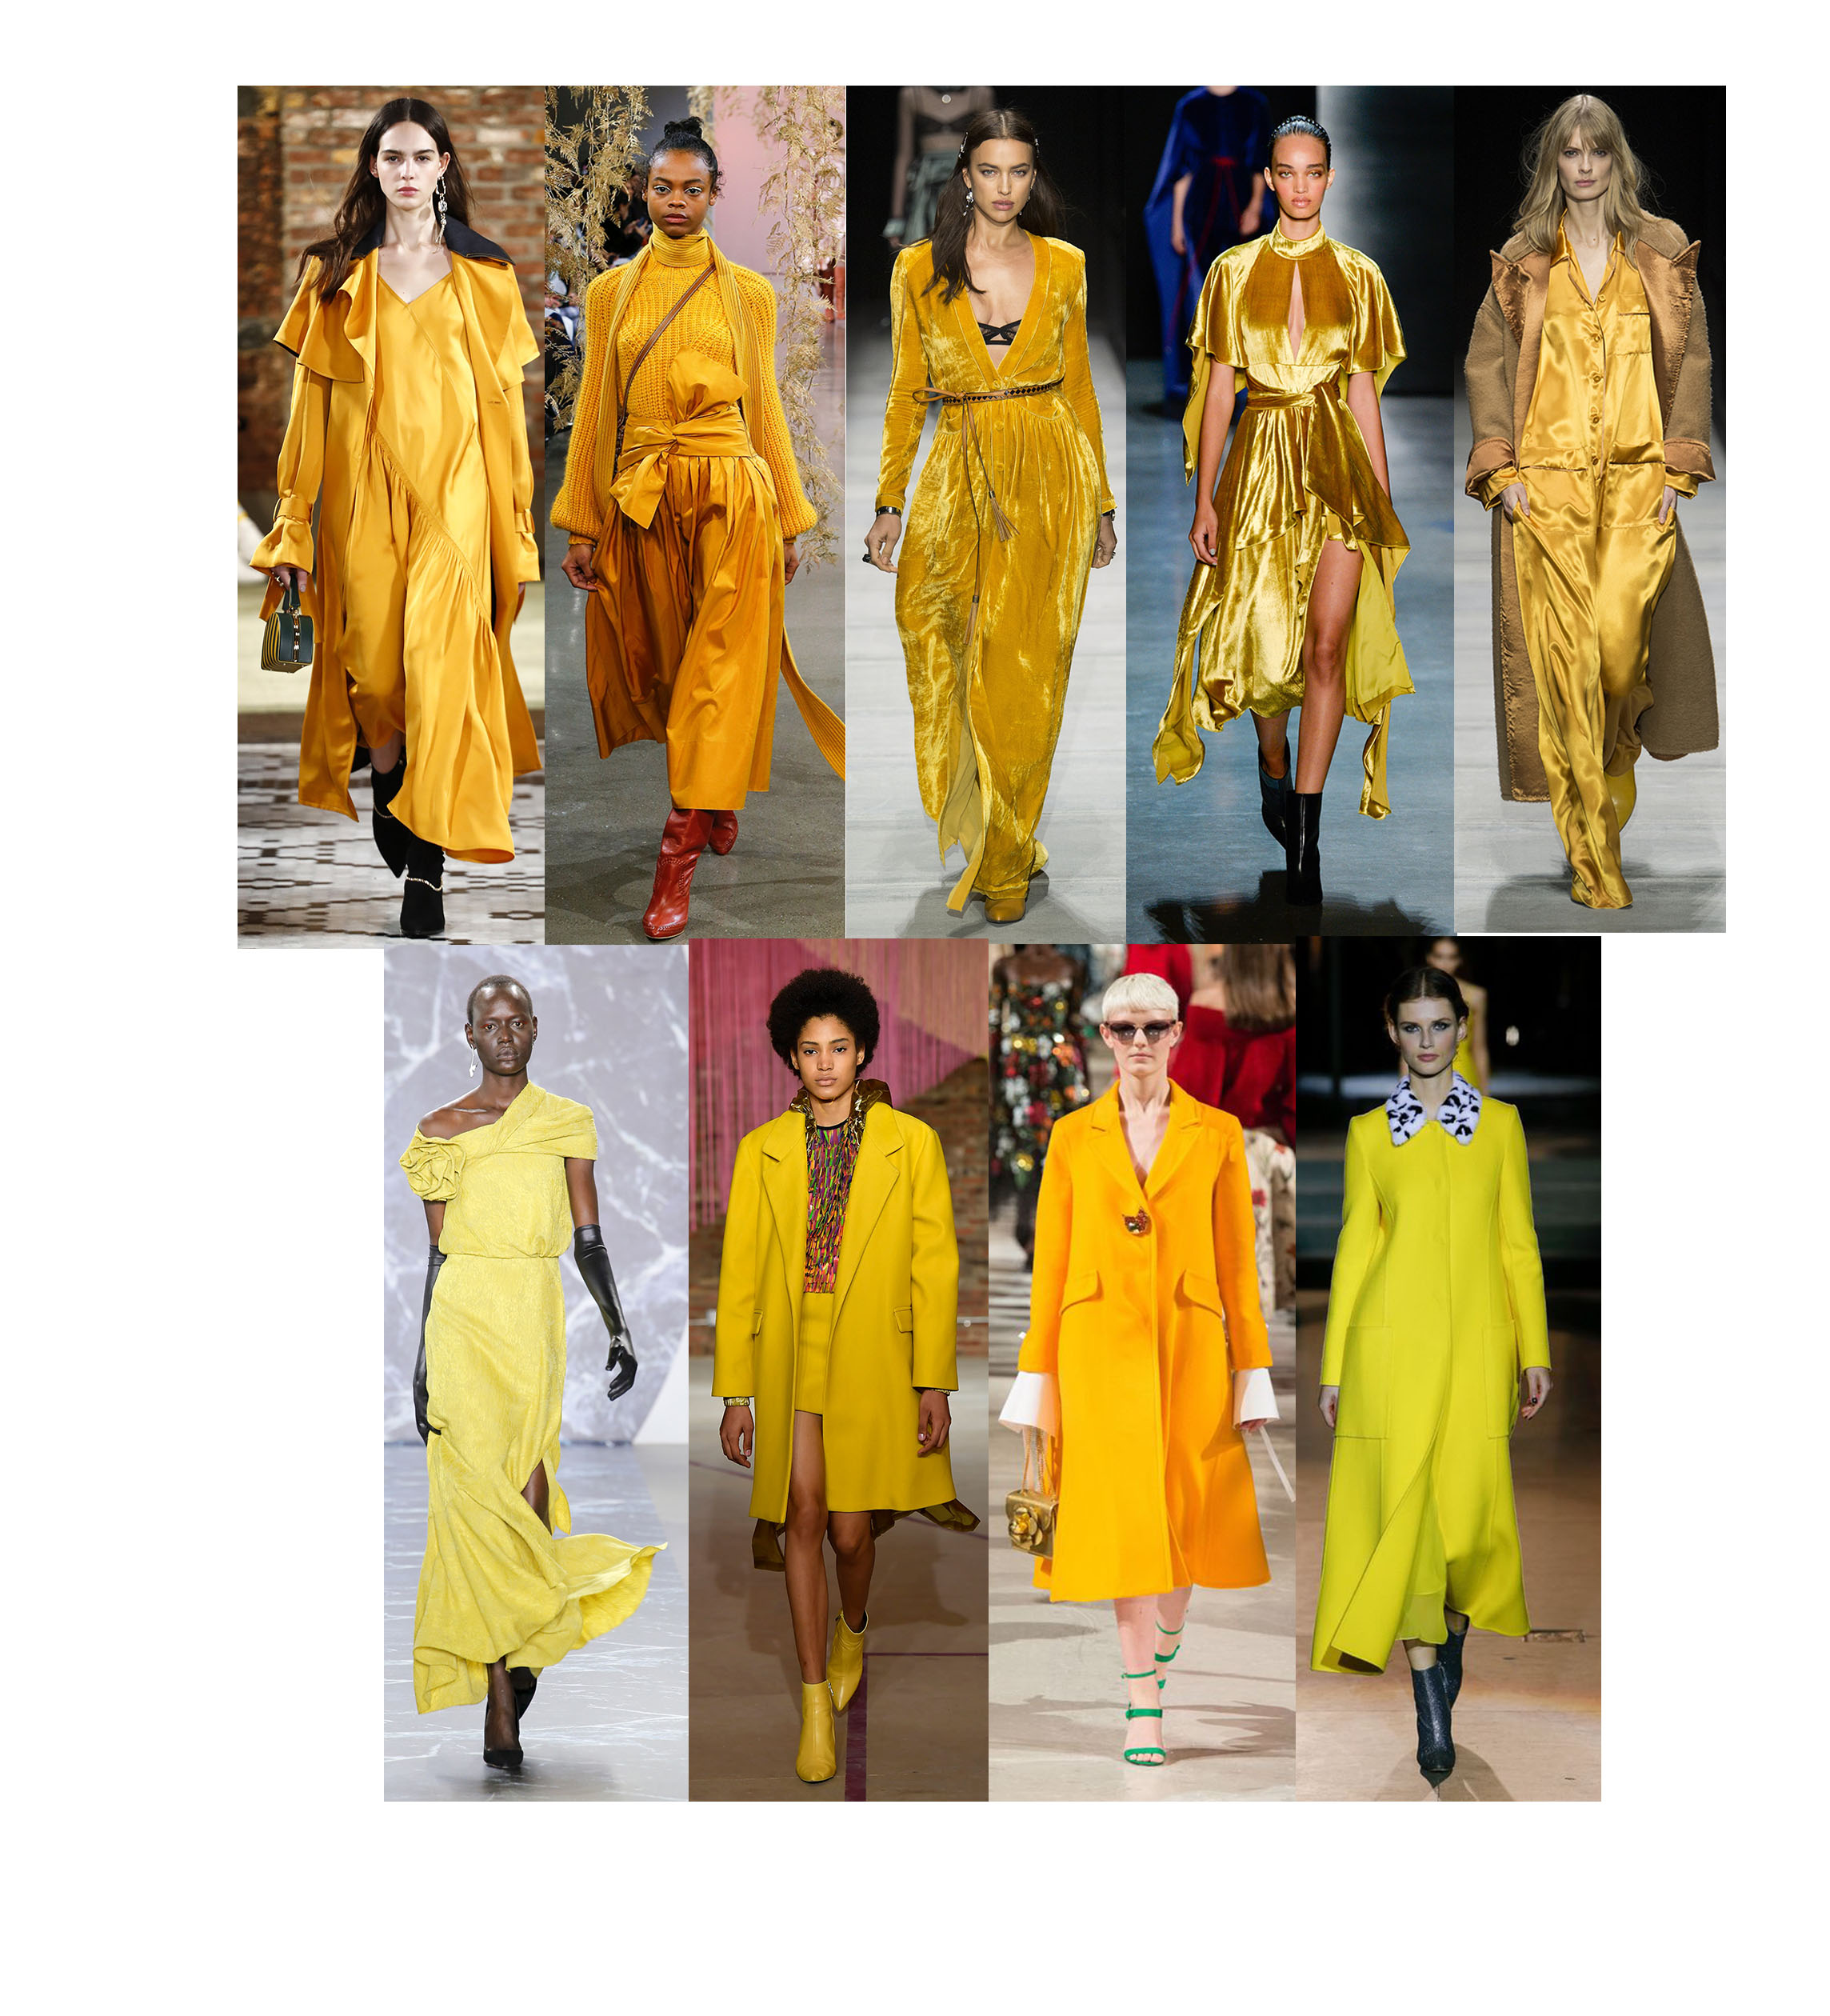 HELLO, SUNSHINE - Optimism was a major theme overall for the SS18 collections, and unsurprisingly, the color yellow seems to be making a major splash. Yellow symbolizes happiness, joy, enlightenment, clarity, positivity, creativity, sunshine and warmth; an appropriate combo of much-needed uplifting mood. ADEAM, Ulla Johnson, Bottega, Prabal Gurung, Bottega Venetta, Brandon Maxwell, Tibi, Oscar de la Renta, Carolina Herrera